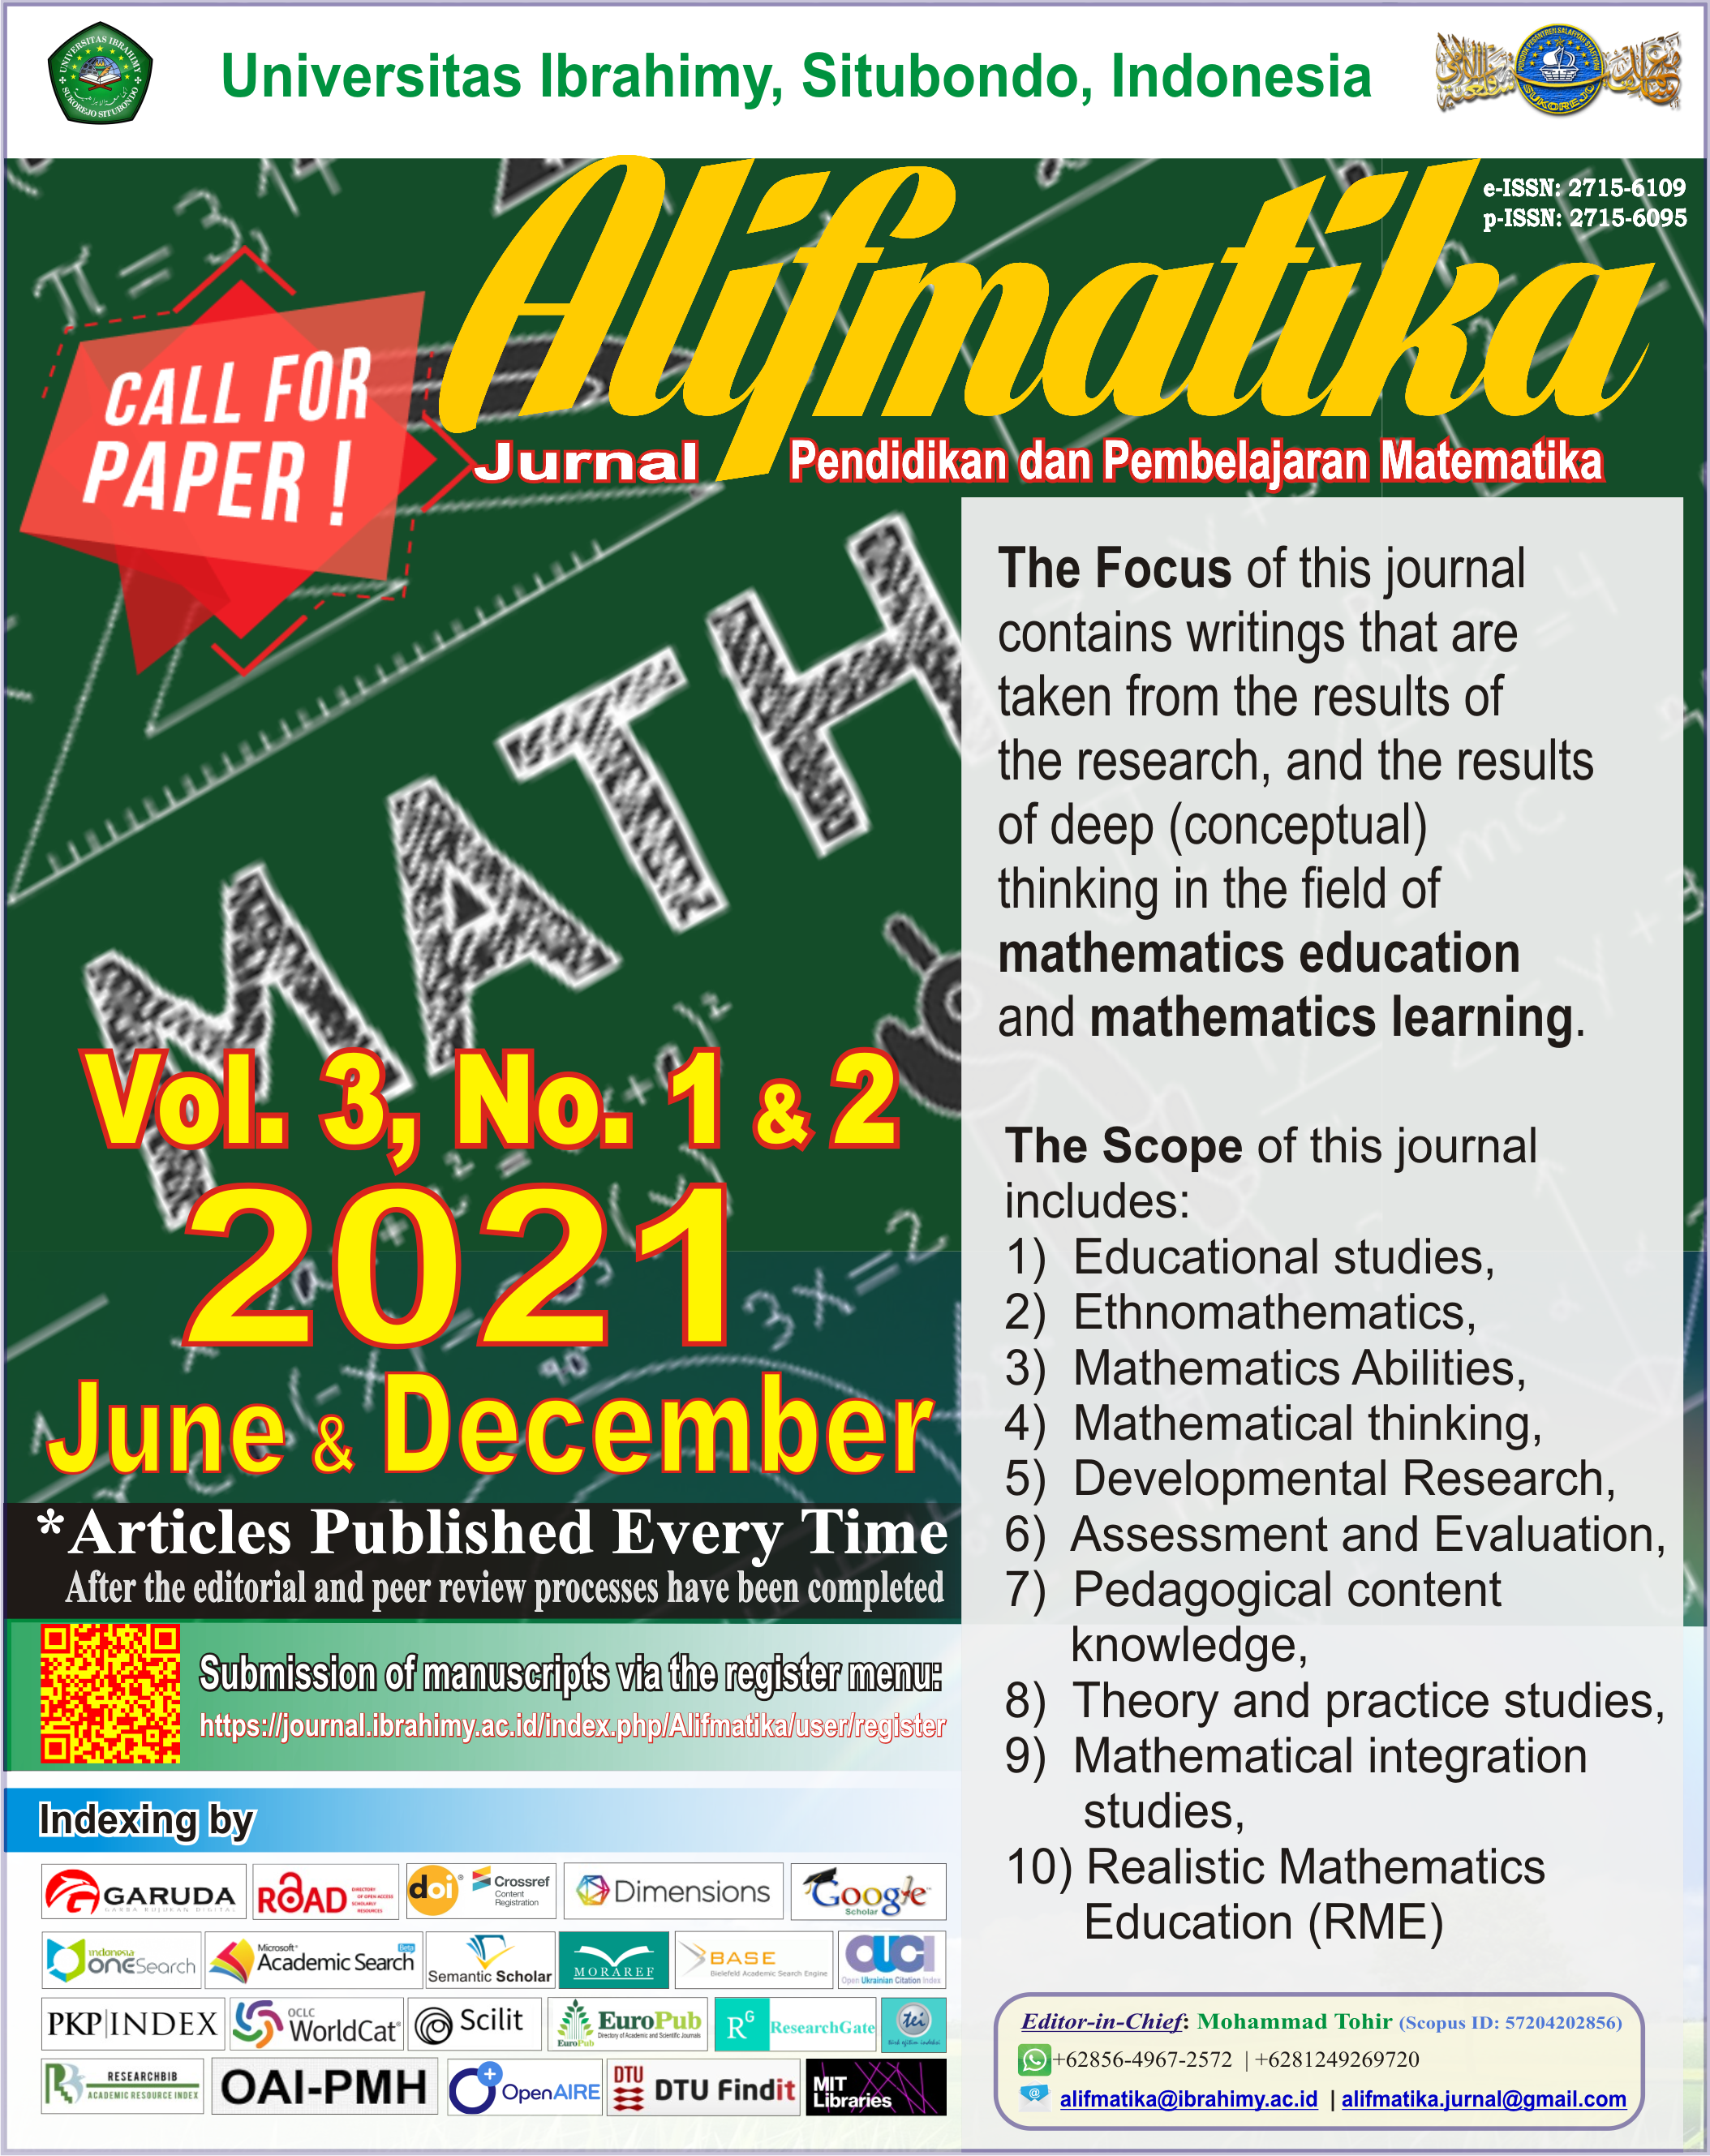 call-for-papers-2021-by-matematohir.png